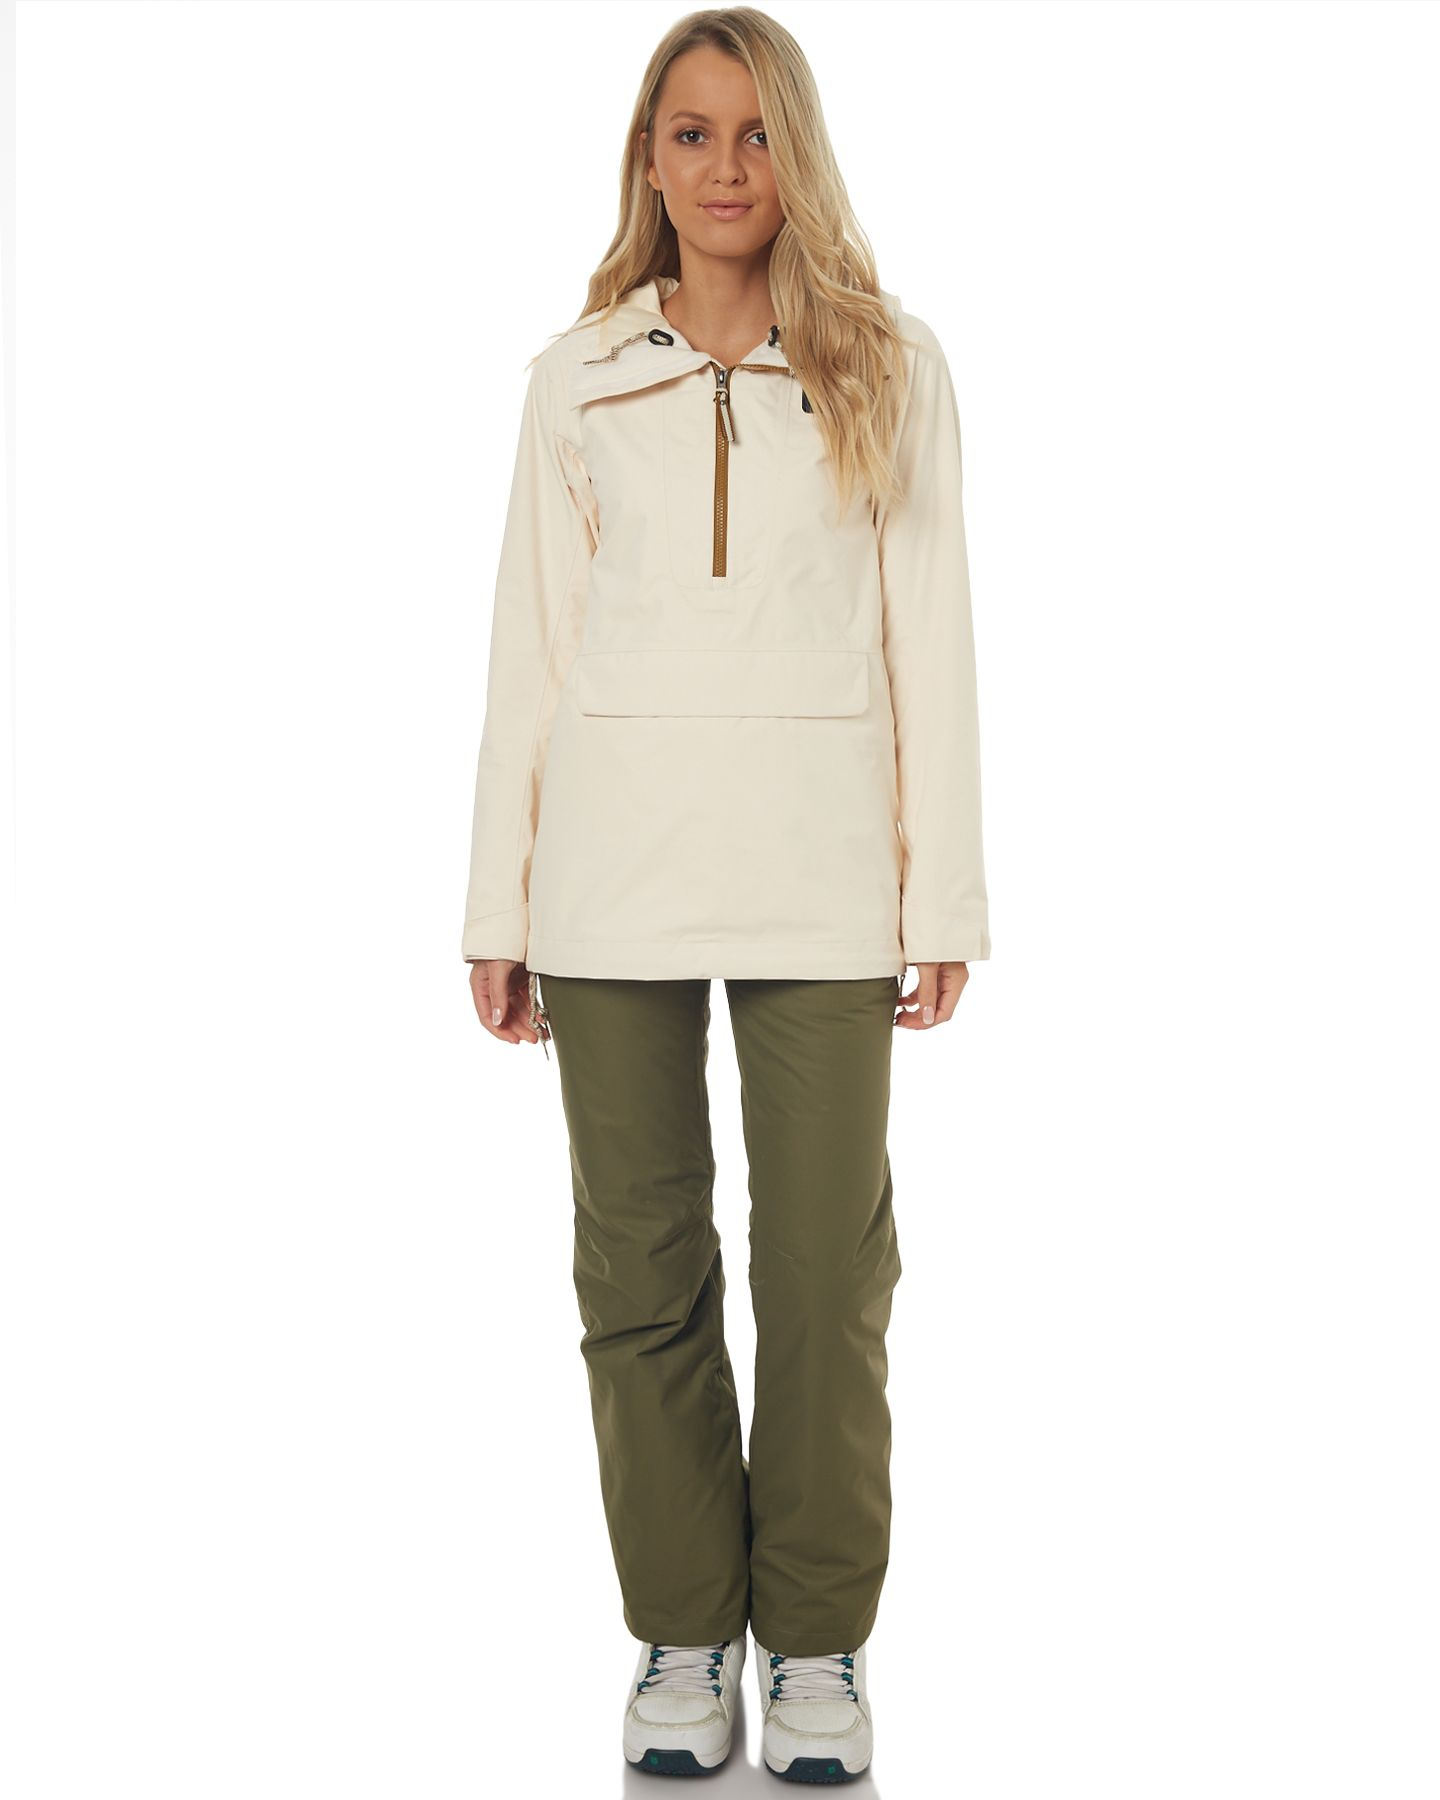 777af879d Womens Tanager Anorak Snow Jacket | Snow gear | Anorak jacket, North ...